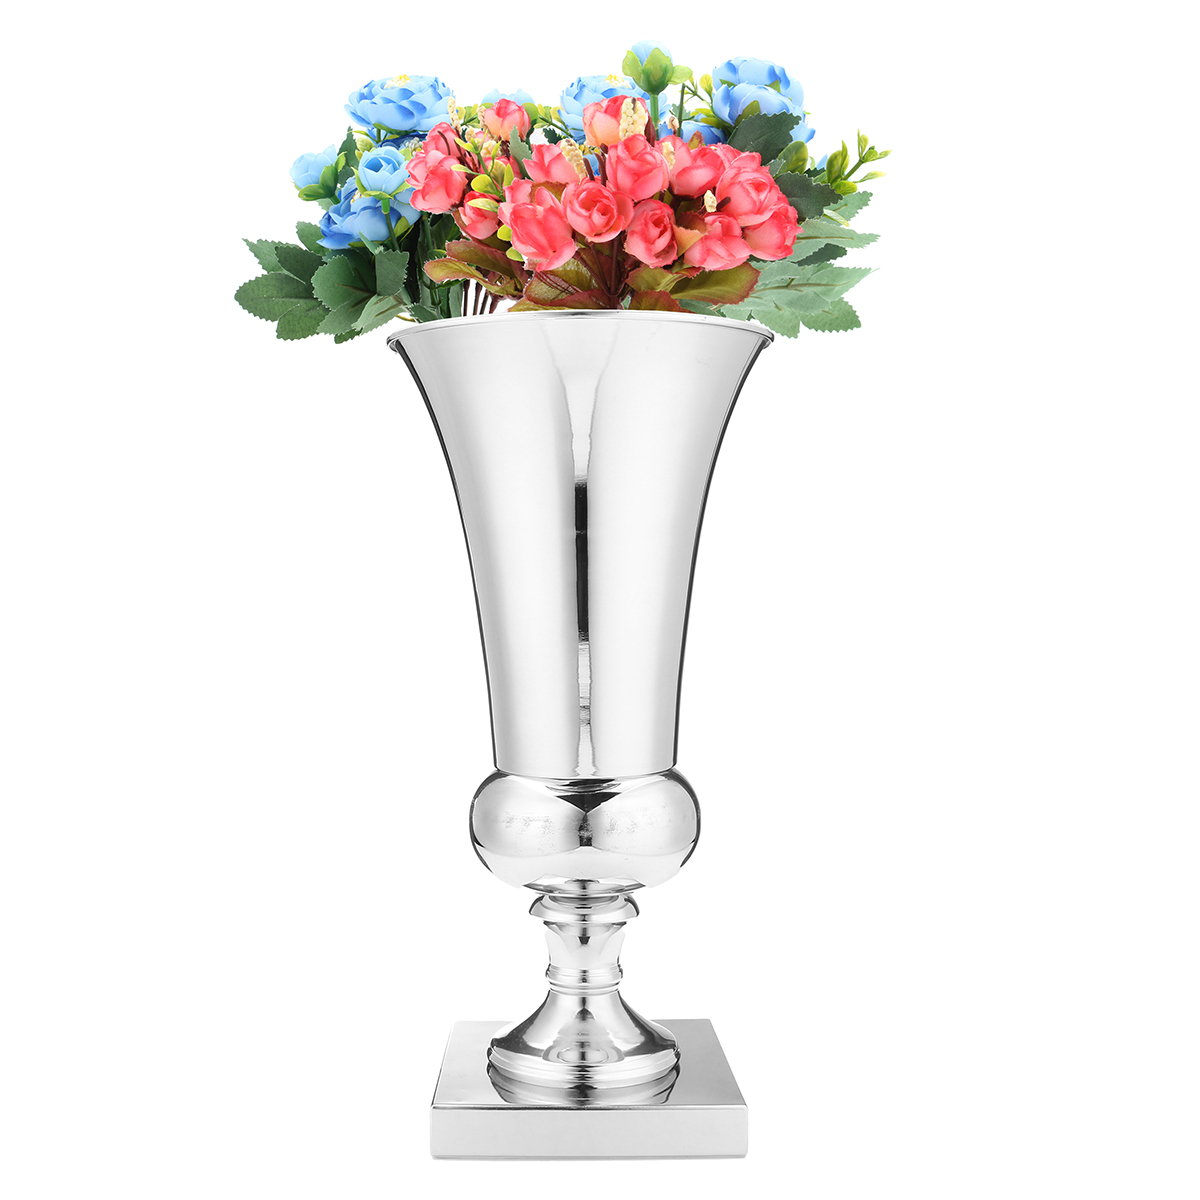 40cm Iron Luxury Flower Vase Display Wedding Table Centrepiece Home Party Decor Silver